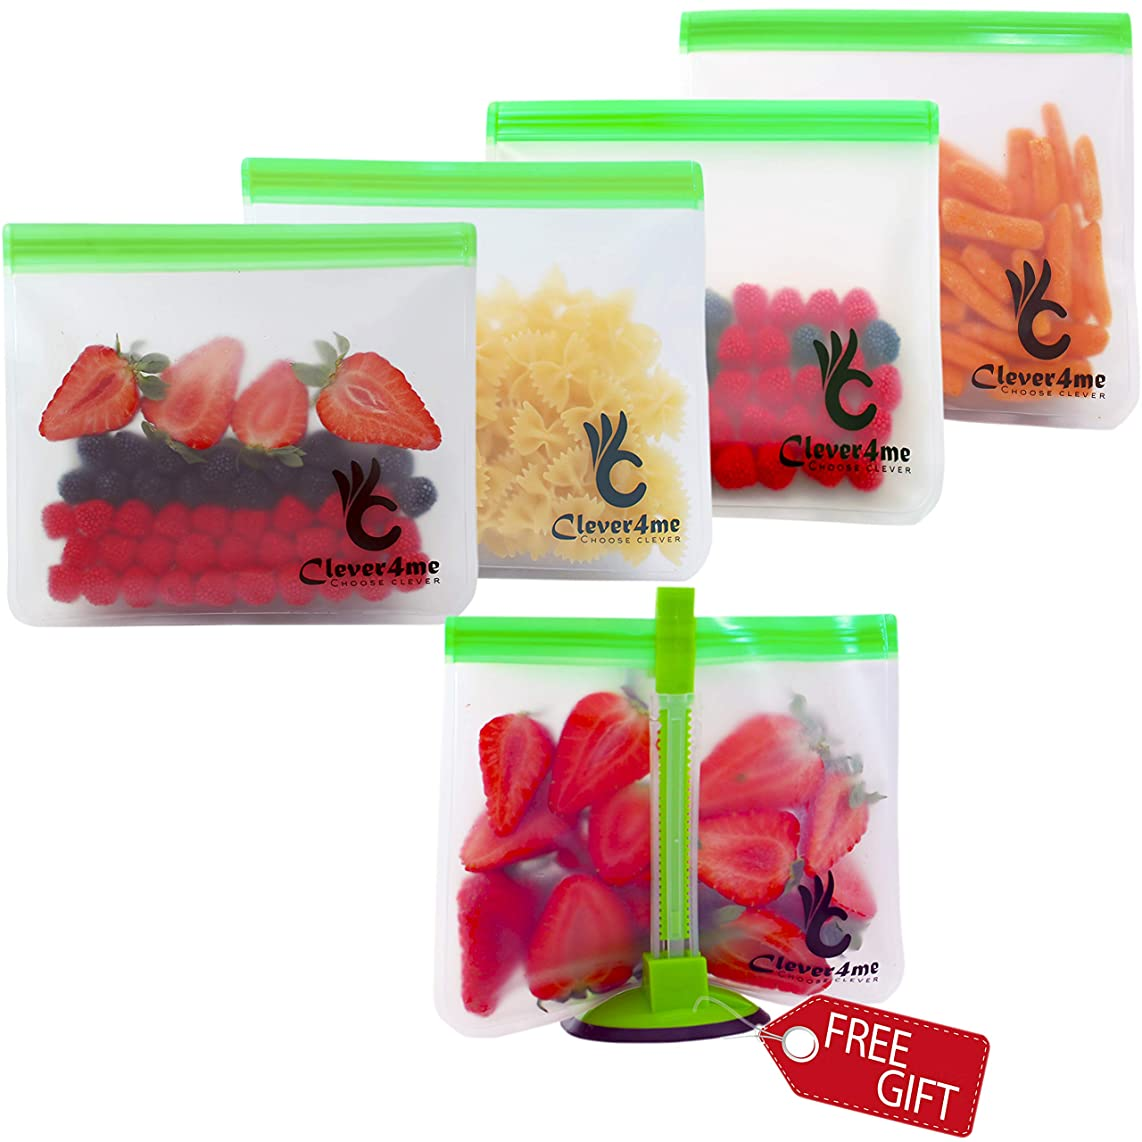 5 Reusable Storage Bags EXTRA THICK + FREE BAGGY RACK - Reusable Ziplock Bags Perfect for Food Storage, Snacks or Veggies–Premium Leak-Free Baggies for Travel or Make Up - Eco Friendly Large pack